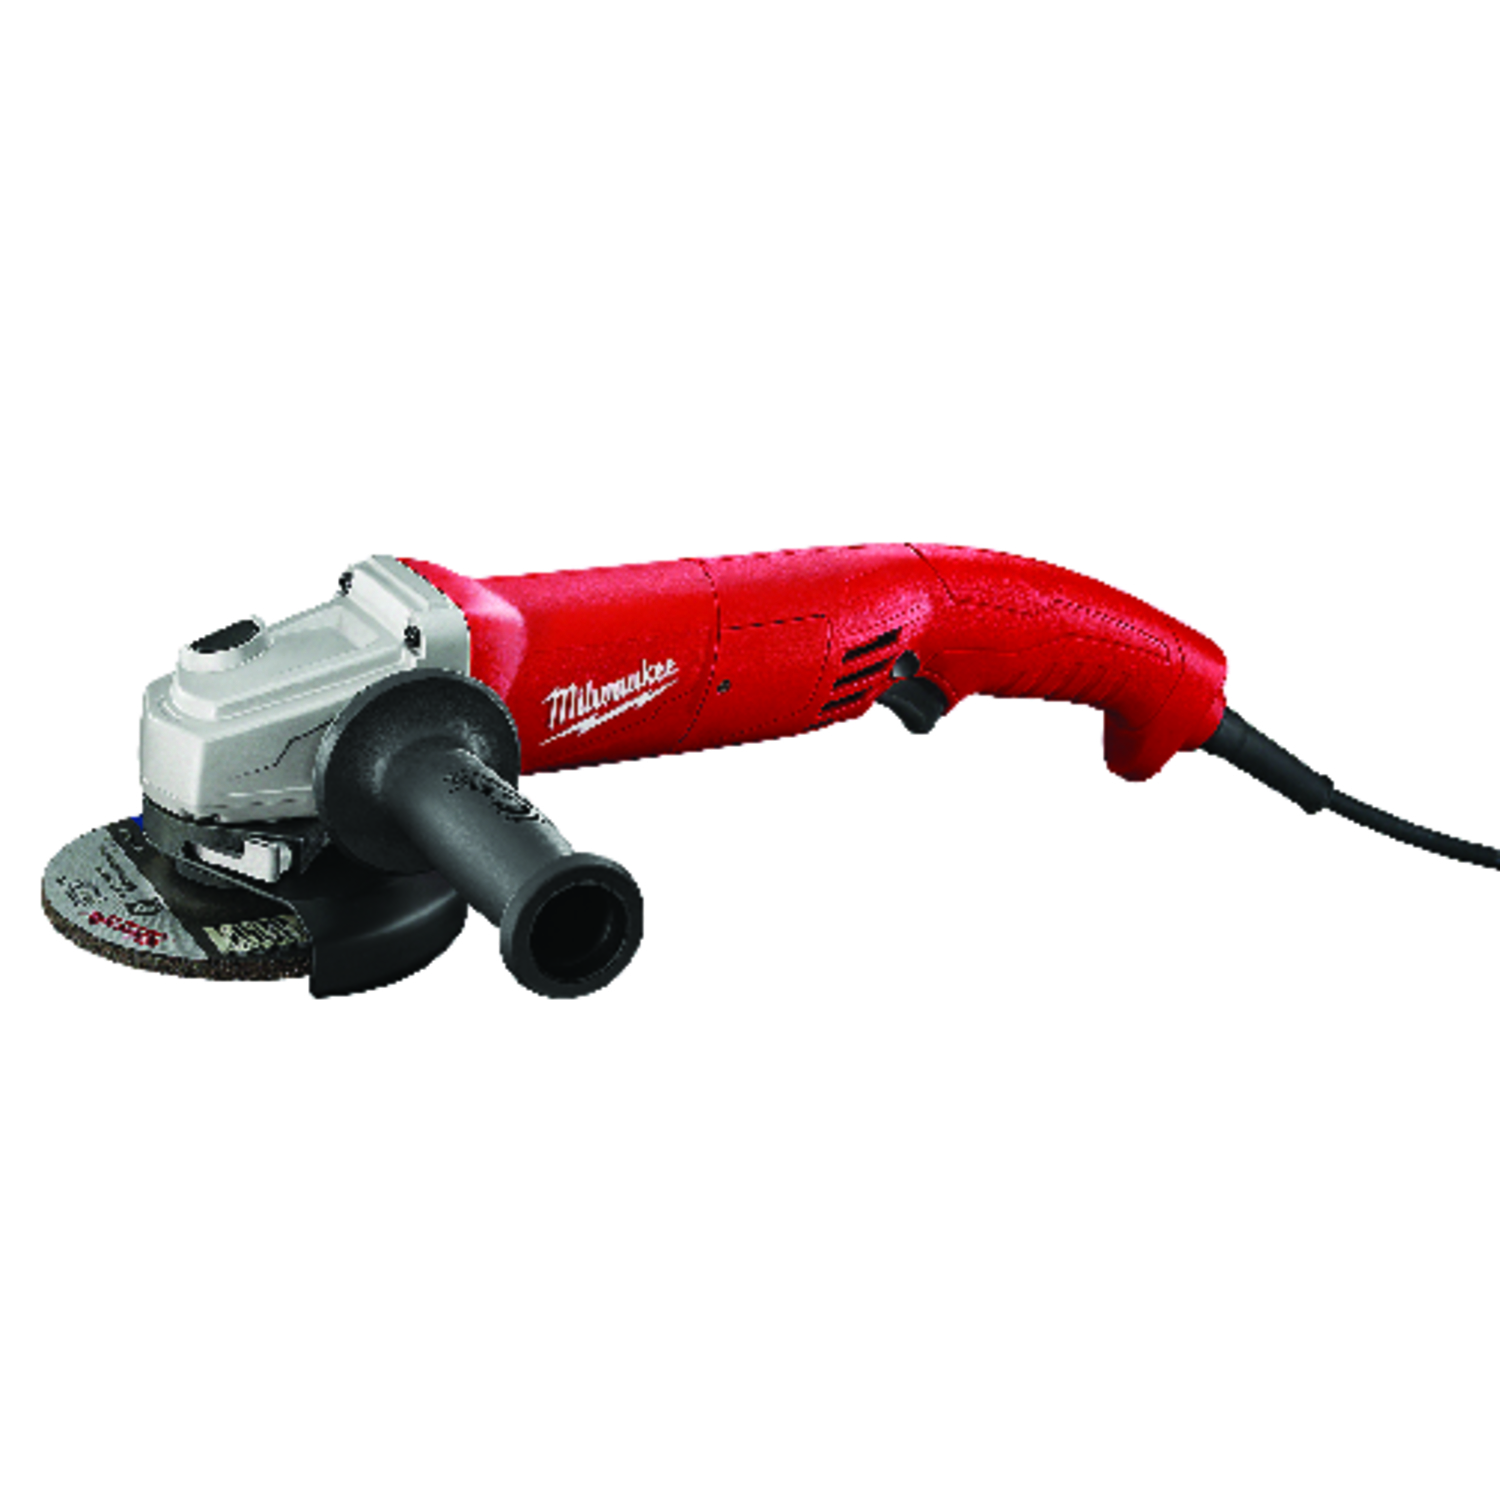 Milwaukee  AC/DC  5 in. 120 volt 11 amps Corded  Trigger Grip  Angle Grinder  11000 rpm